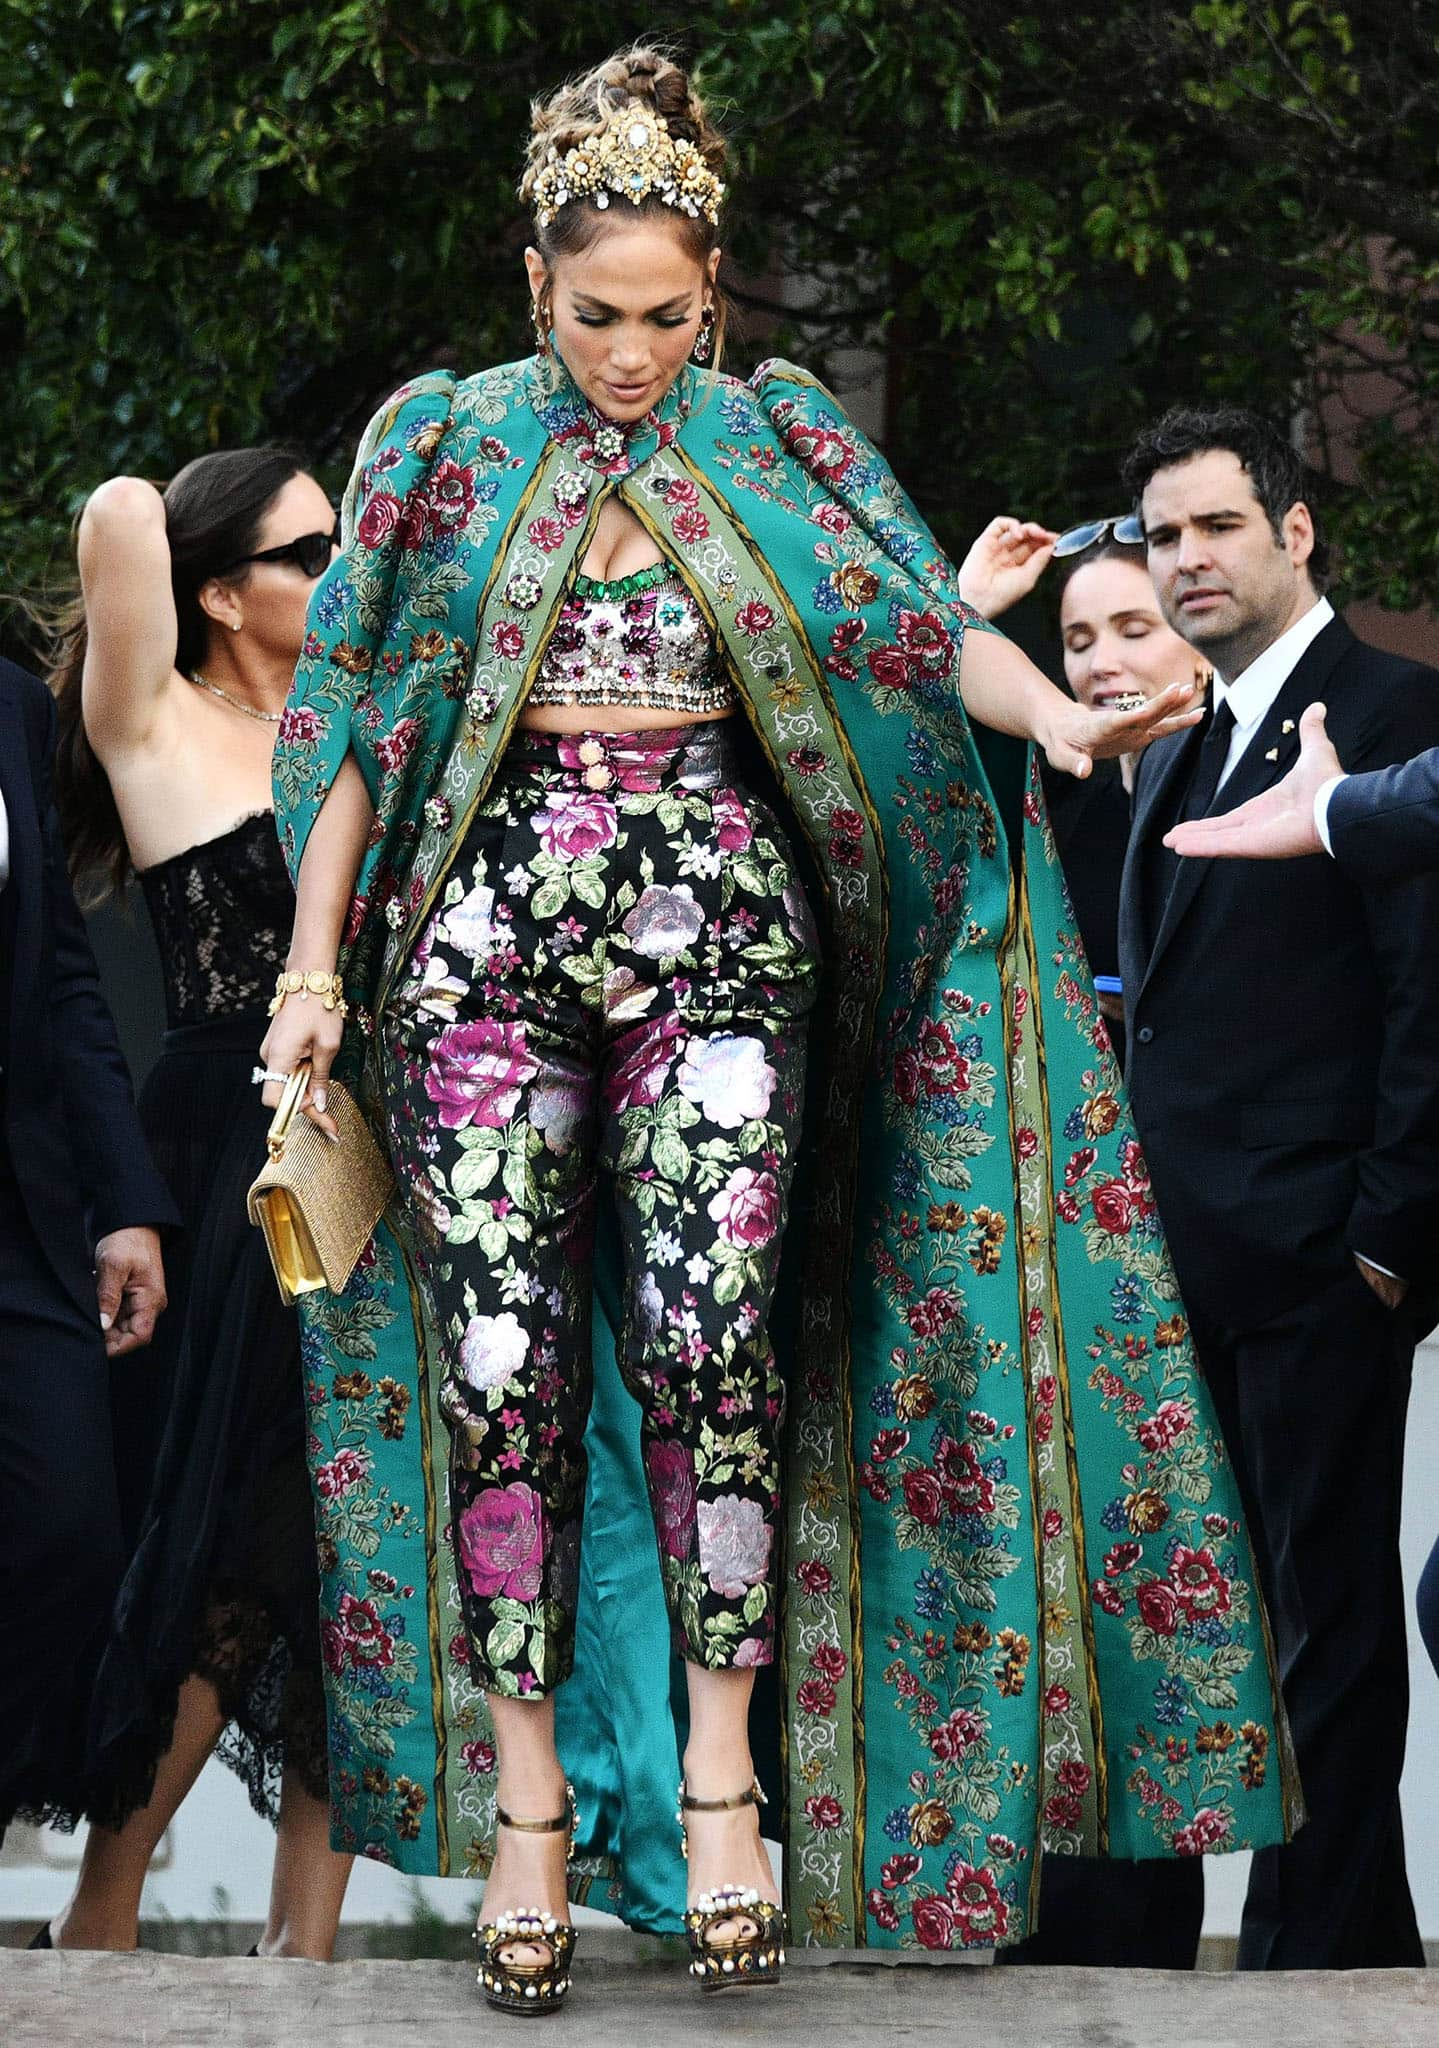 Jennifer Lopez leaving Hotel San Clemente en route to Piazza San Marco for Dolce & Gabbana's Venice Alta Moda fashion show in Italy on August 29, 2021